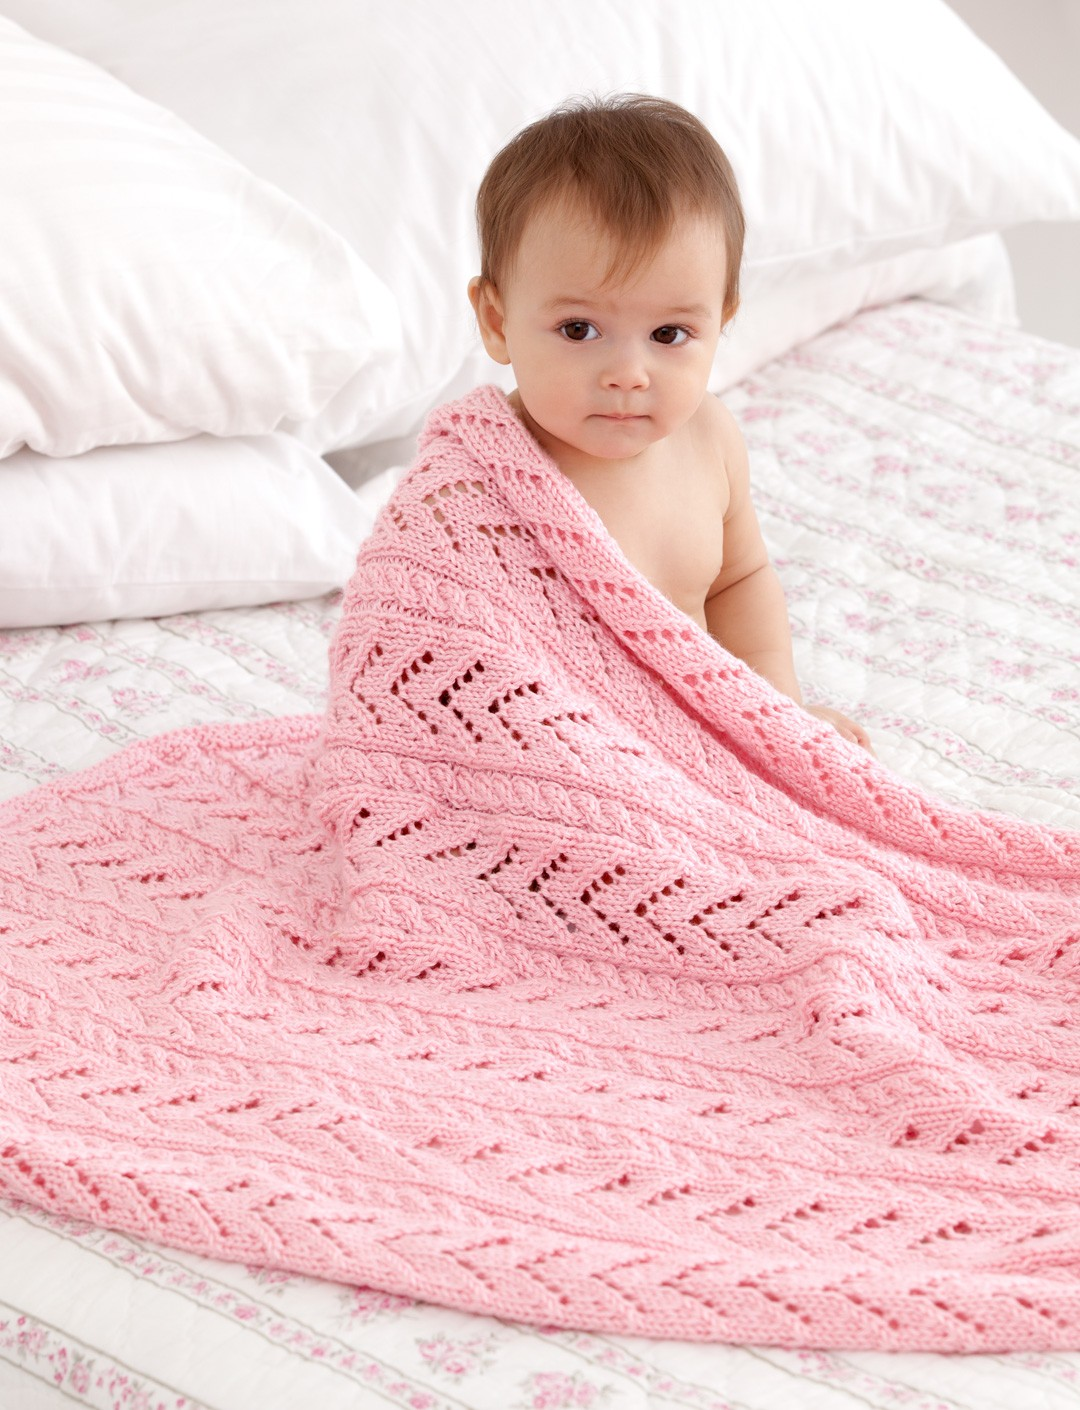 Caron Little Girl Pink Baby Blanket, Knit Pattern Yarnspirations